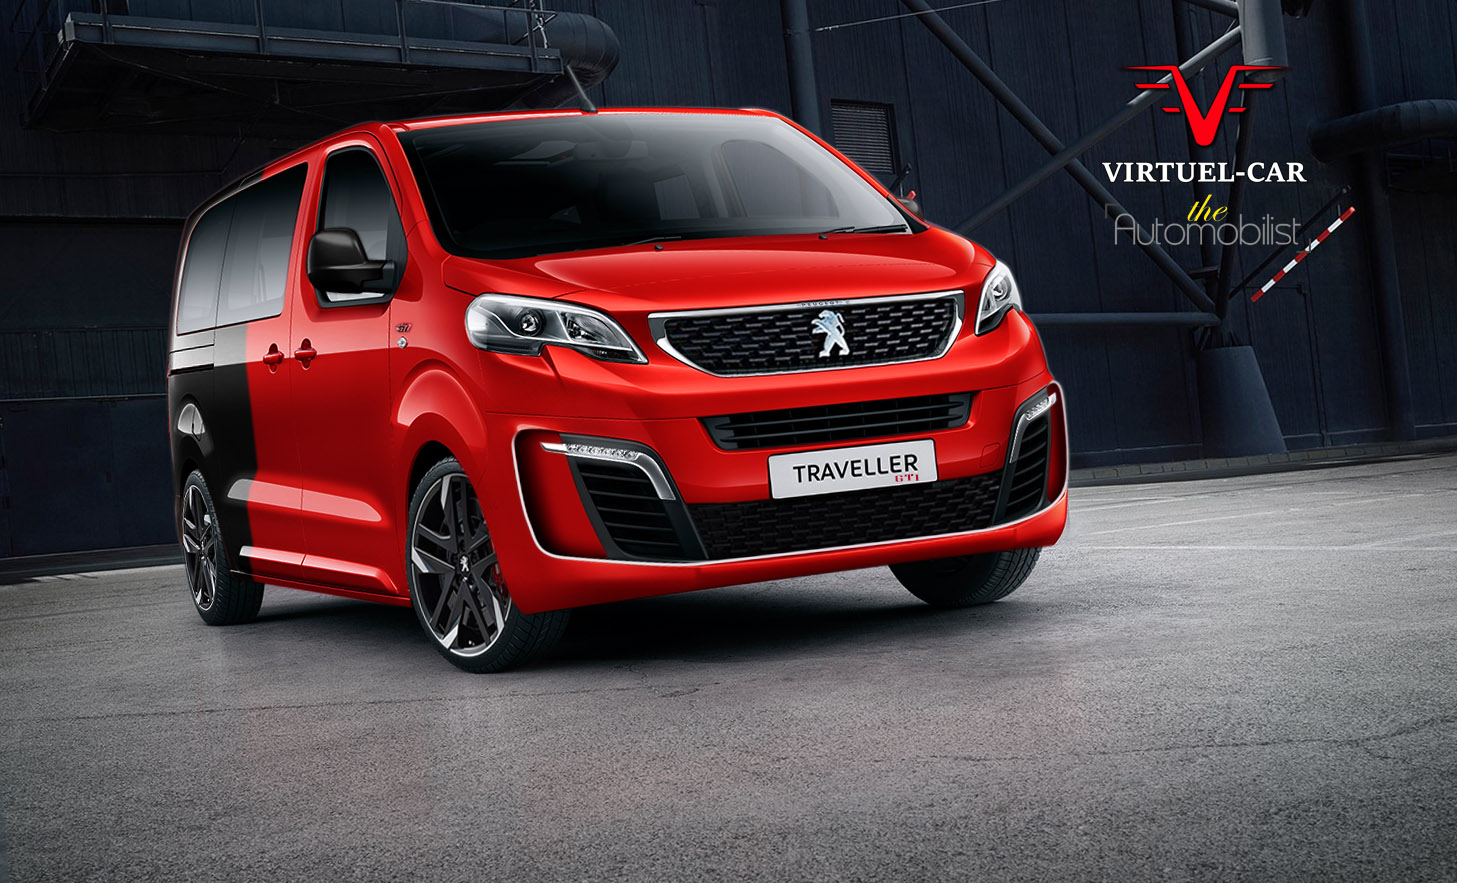 Peugeot Hdi Fap Premium additionally Peugeot R Hybrid Shanghai moreover Peugeot Cc in addition Z P Mld besides Maxresdefault. on peugeot 308